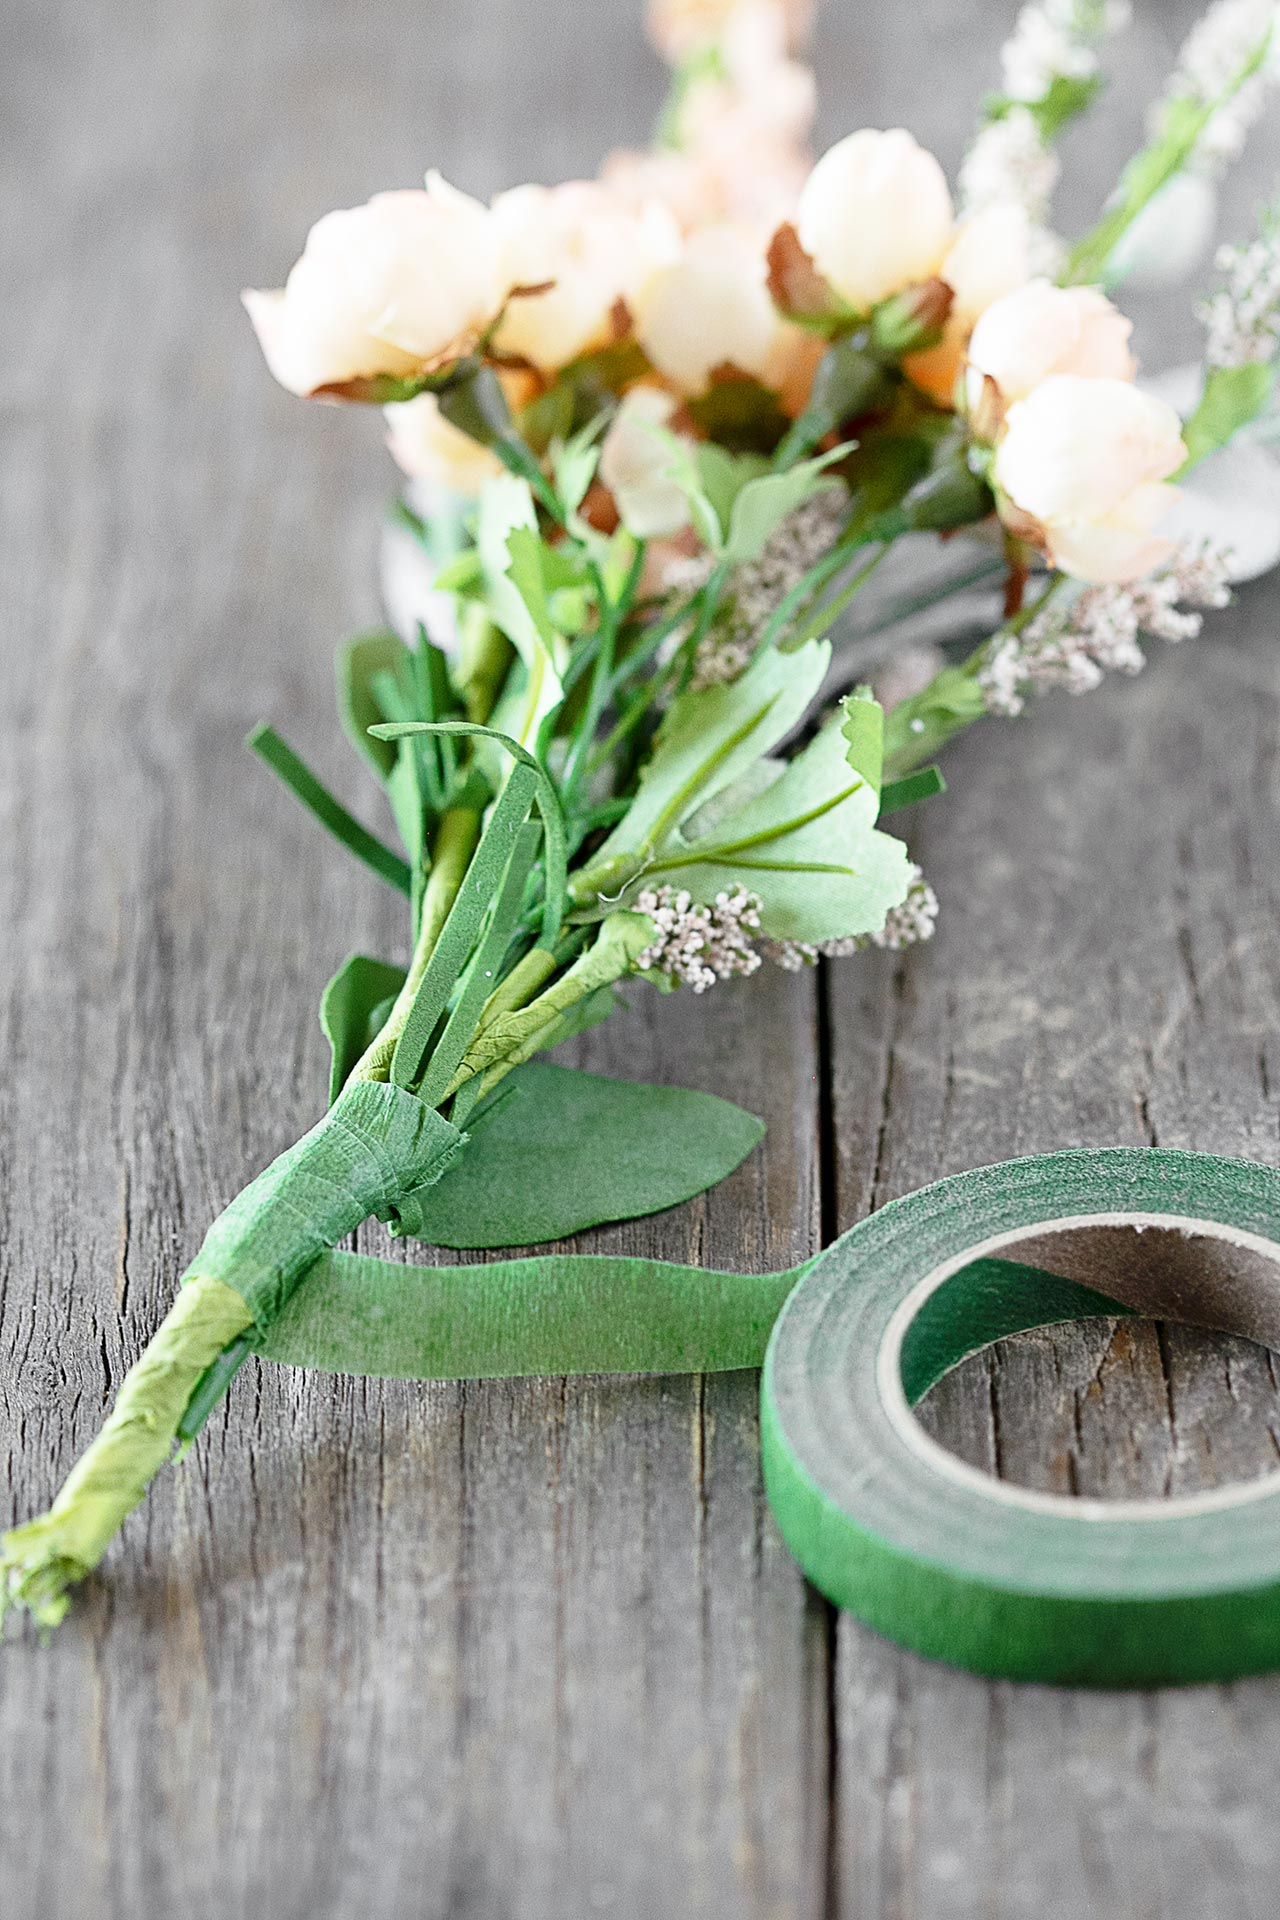 Wrapping Floral Stems Together with Floral Tape